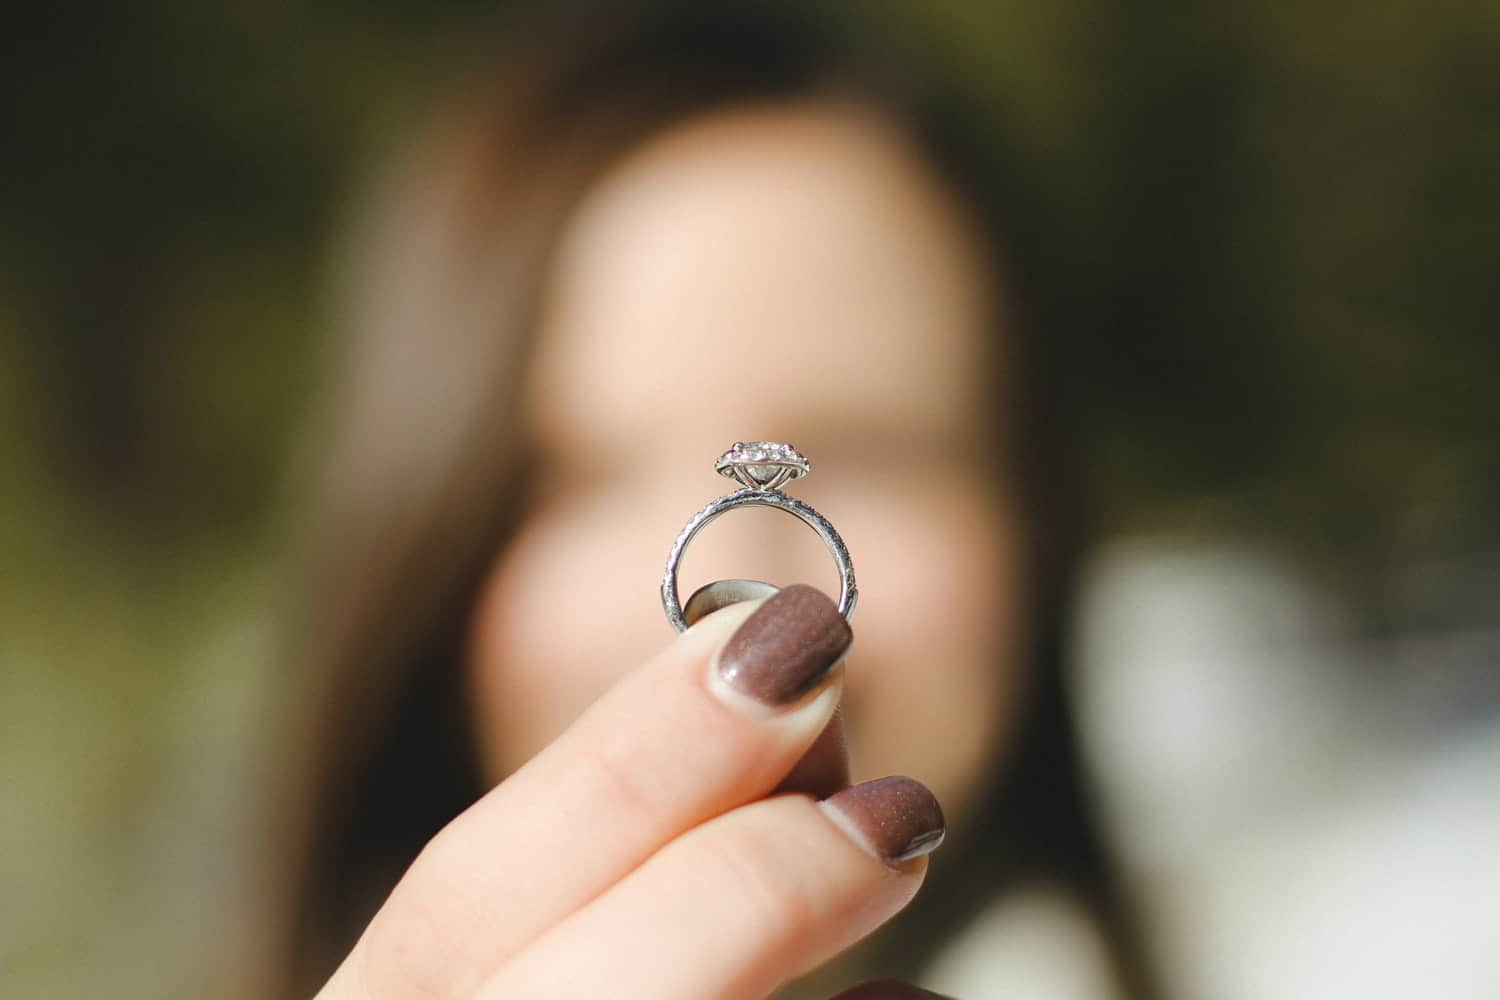 ring blurred background